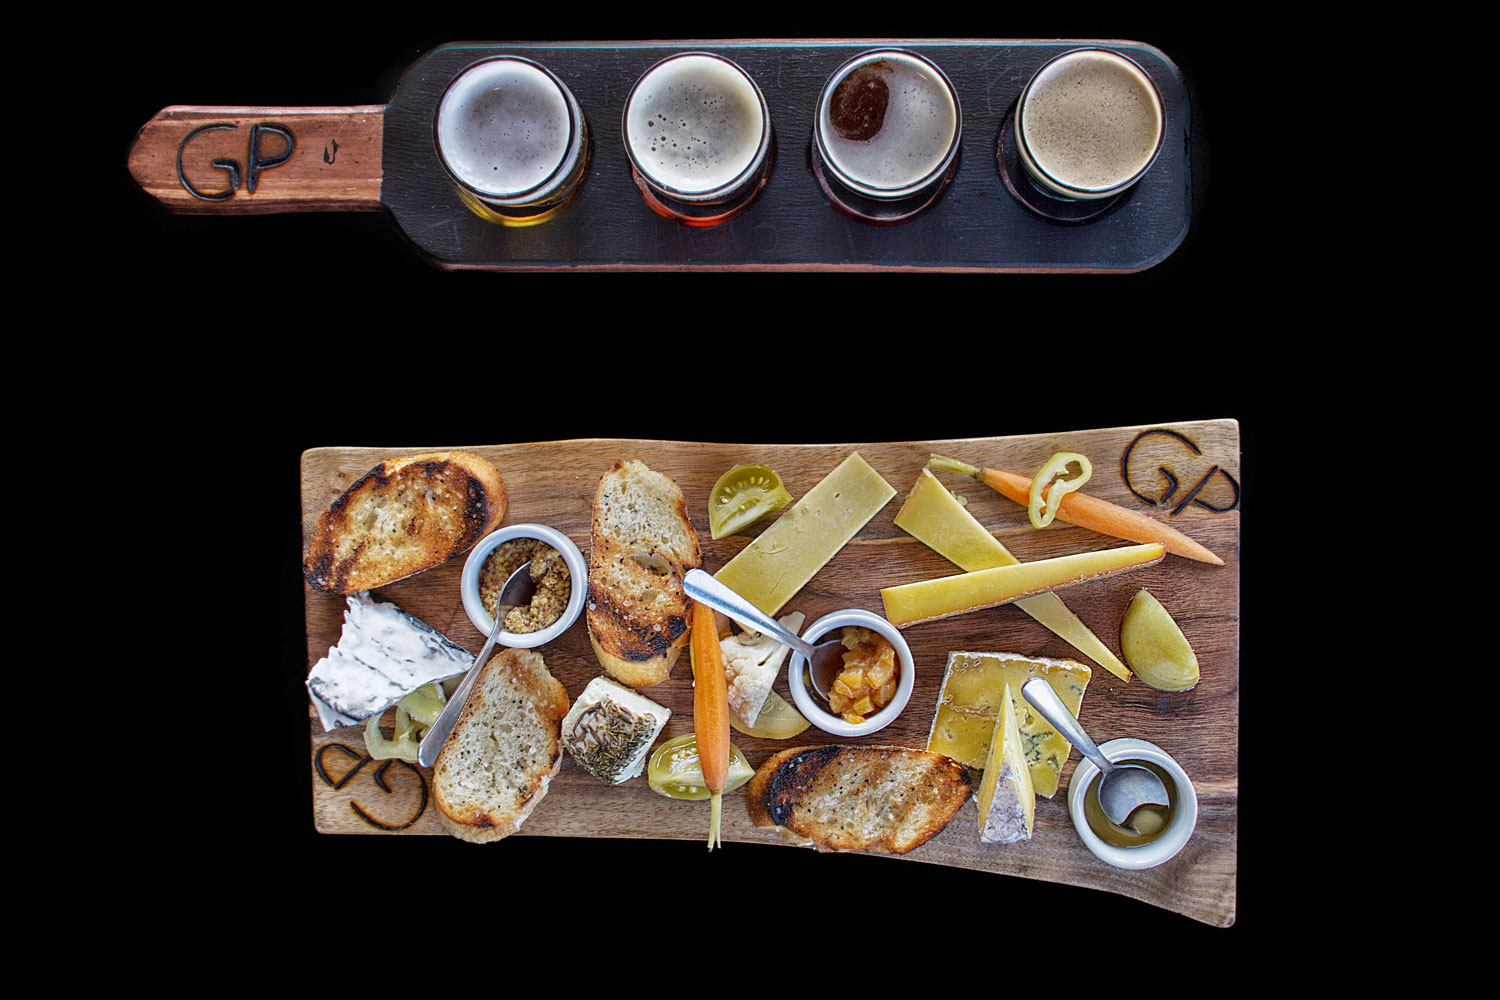 beer and cheese plate prepared by The Garlic Poet